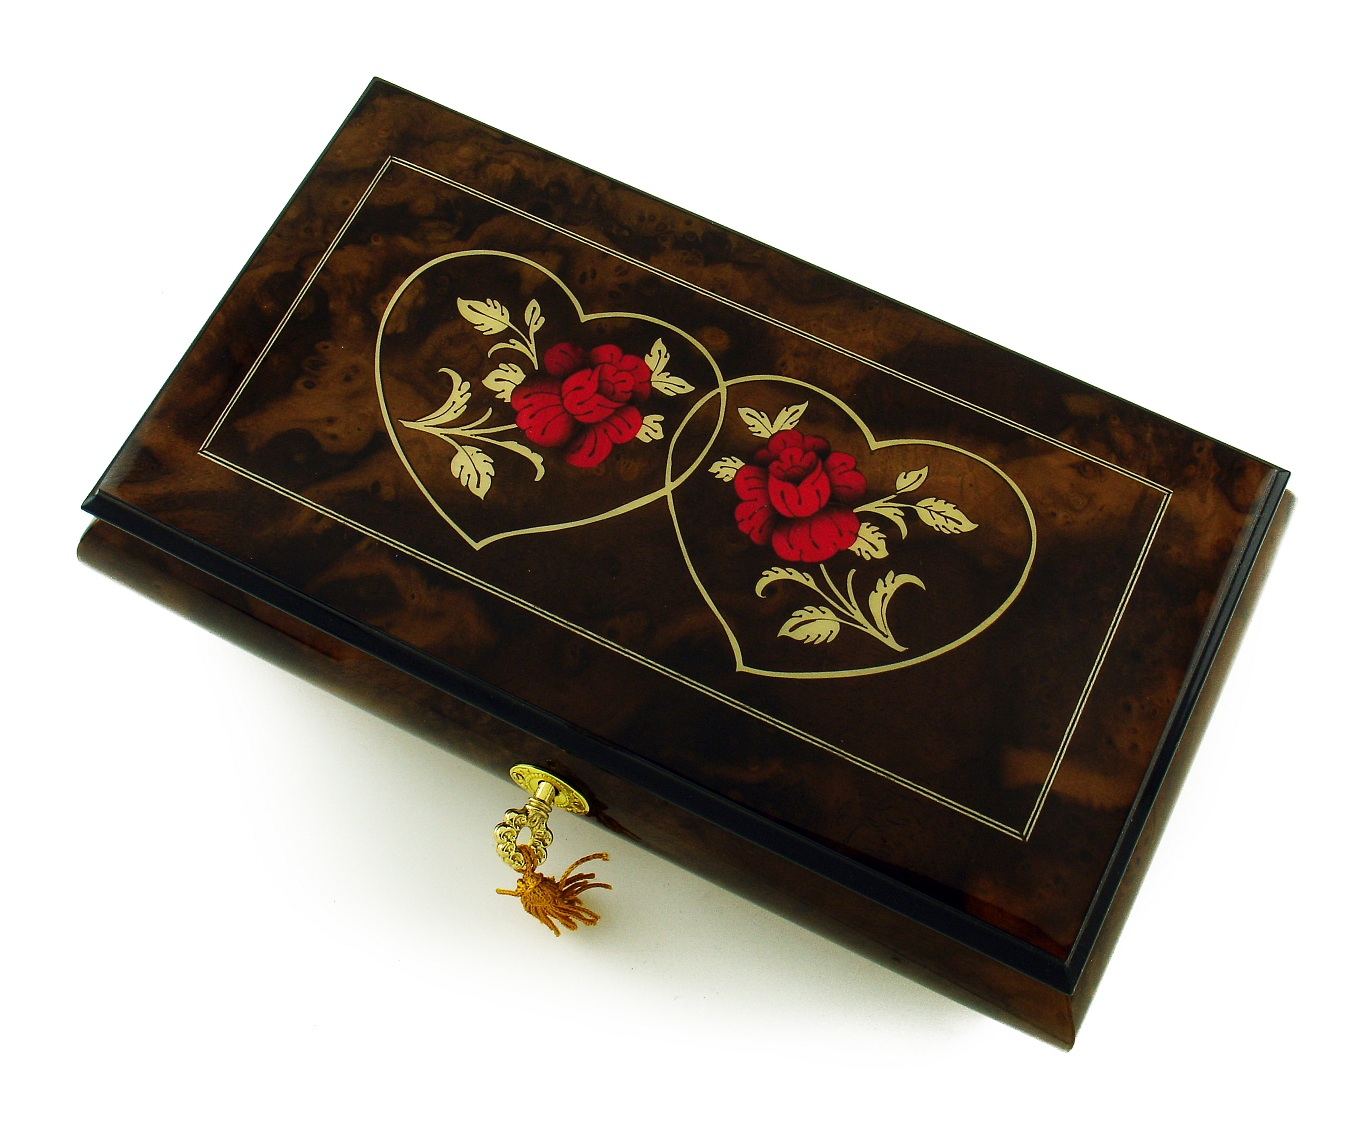 Romantic 30 Note Walnut Tone Double Red Rose and Heart Musical Jewelry Box with 30 Note Tune-Edelweiss